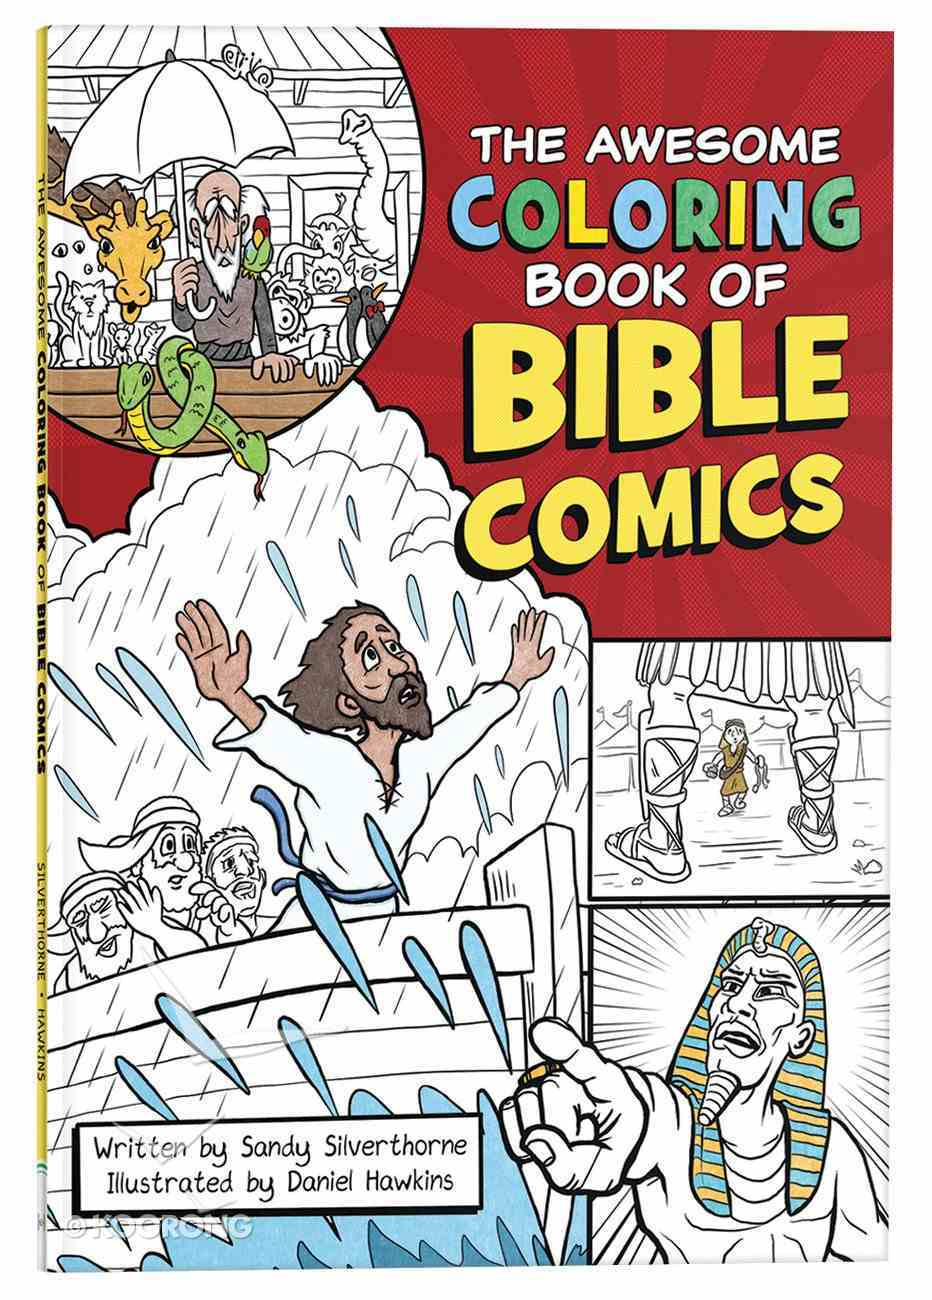 The Awesome Coloring Book of Bible Comics Paperback